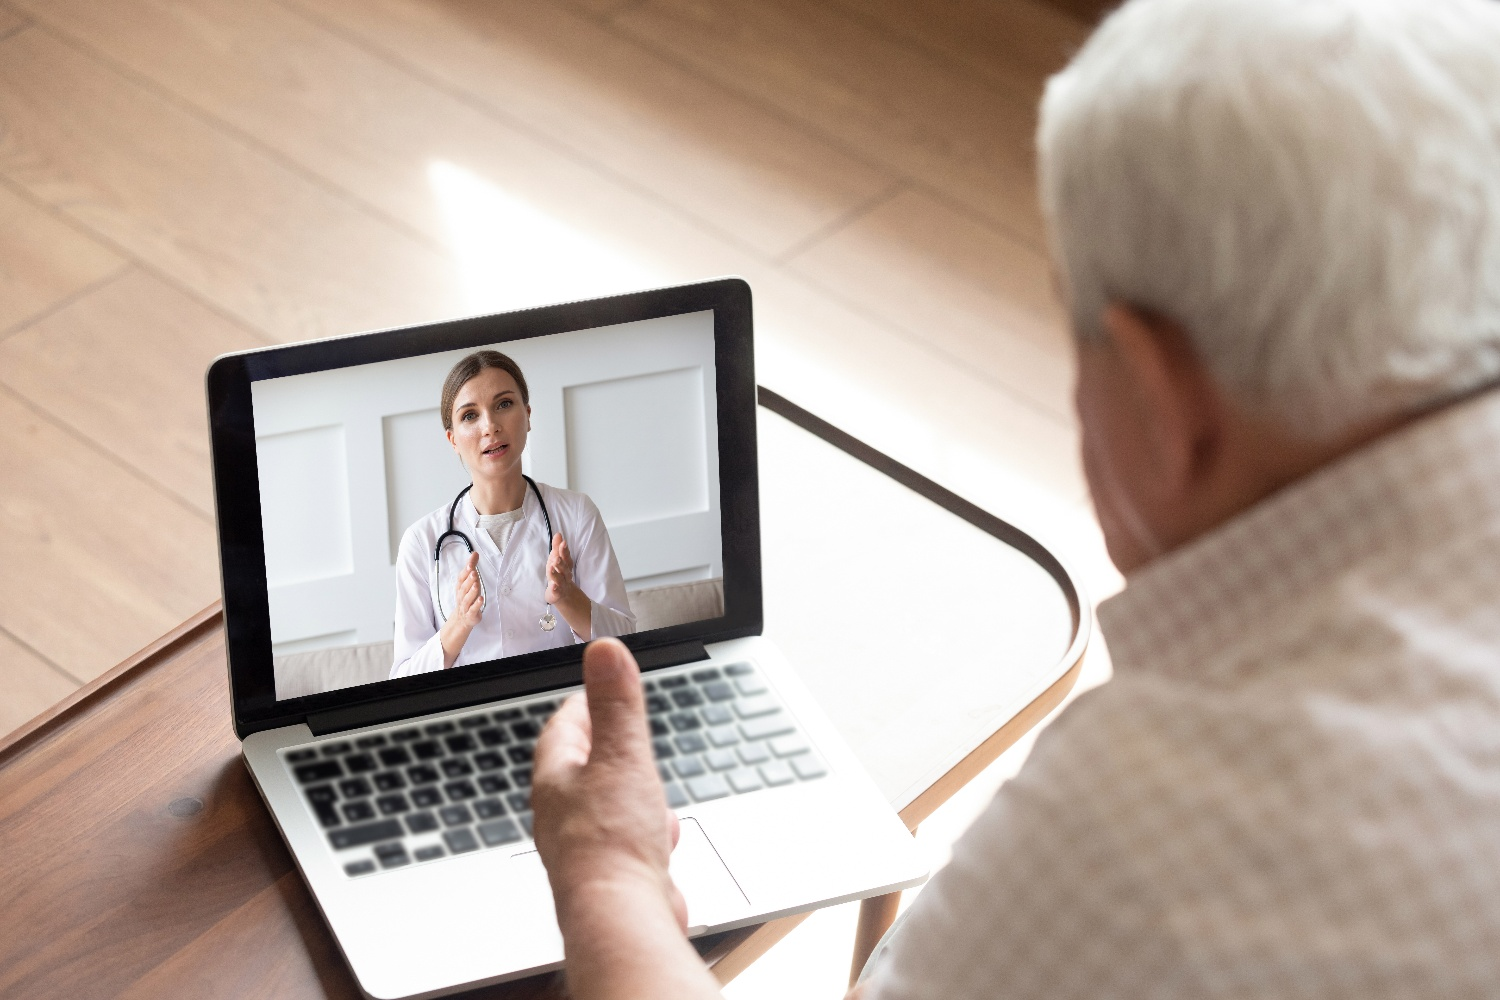 value-based care: virtual visit